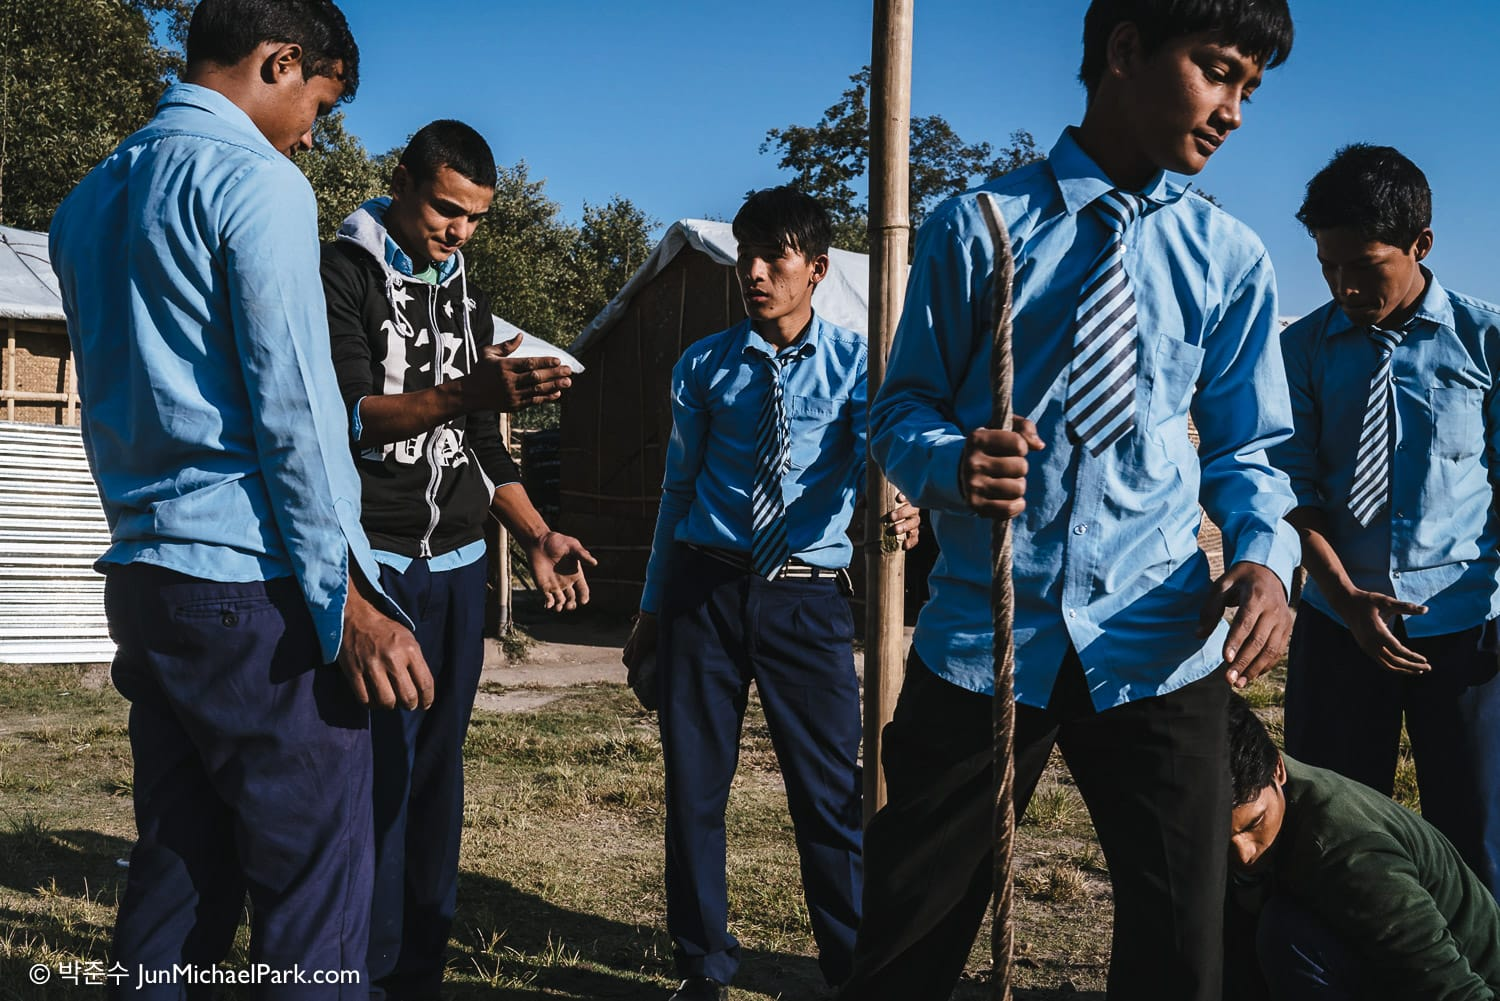 Students at Kavresthali Secondary School north of Kathmandu plant a pole in the playground. The school was completely destroyed by the earthquake. UNICEF came to rescue and built temporary classrooms. 03.11.15